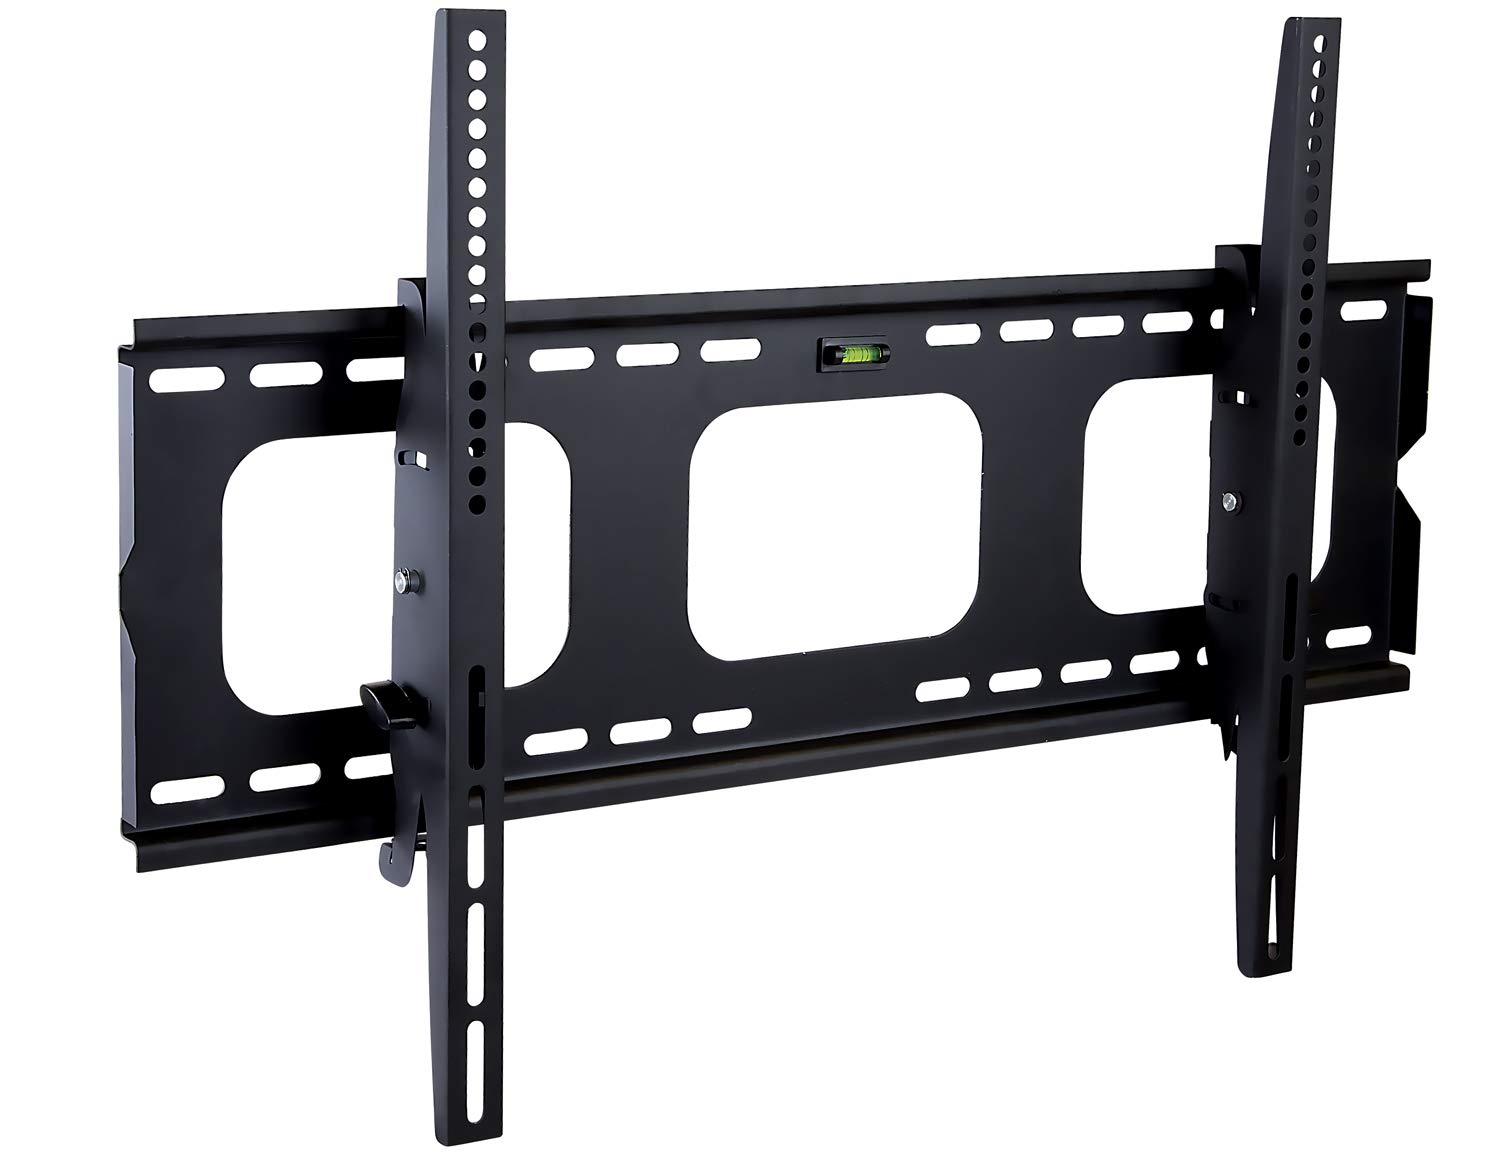 Mount-It! Tilting TV Wall Mount Bracket For Samsung Sony Vizio LG Panasonic TCL Element 32 40 42 47 50 55 60 65 Inch TVs VESA 200x200 400x400 600x400, 750x450 Compatible Premium Tilt 175 Lbs Capacity by Mount-It!